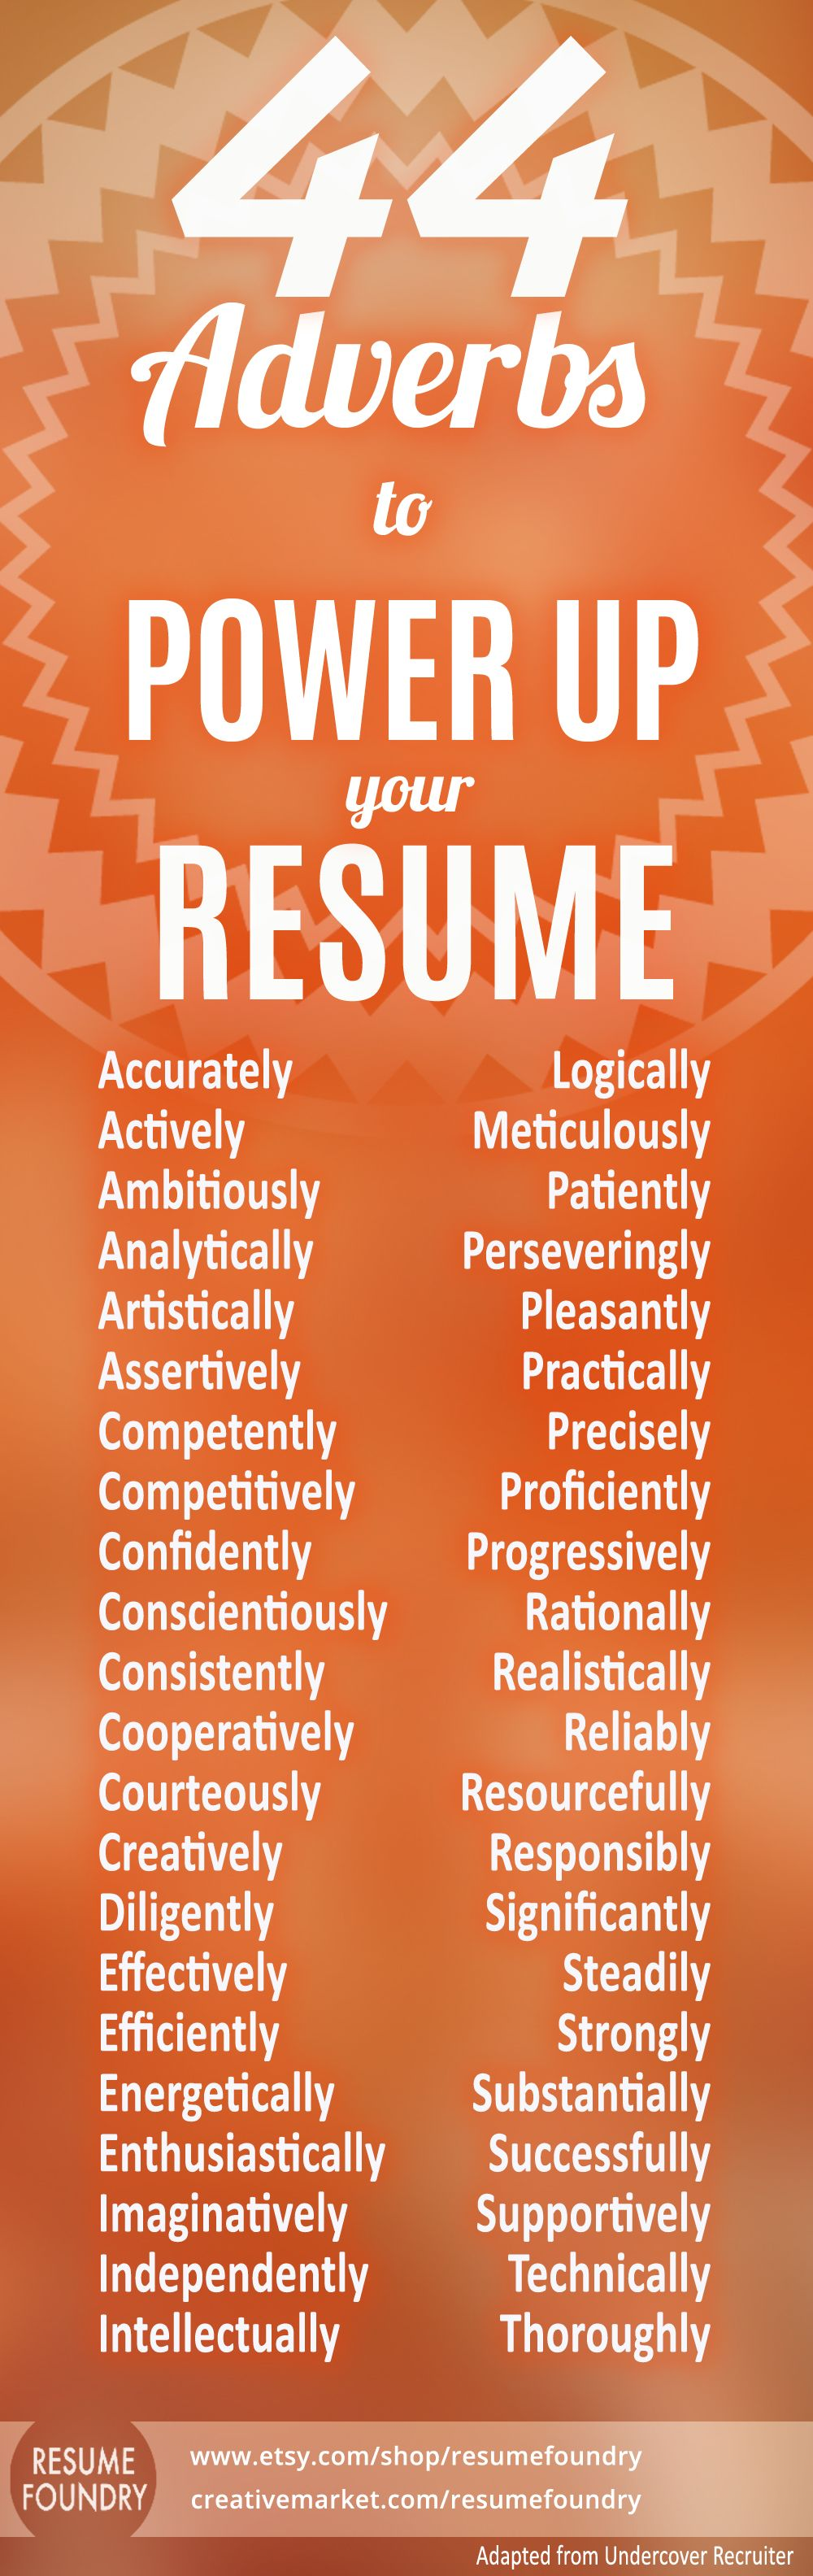 resume Resume Adverbs 44 adverbs to power up your resume tips keywords keywords